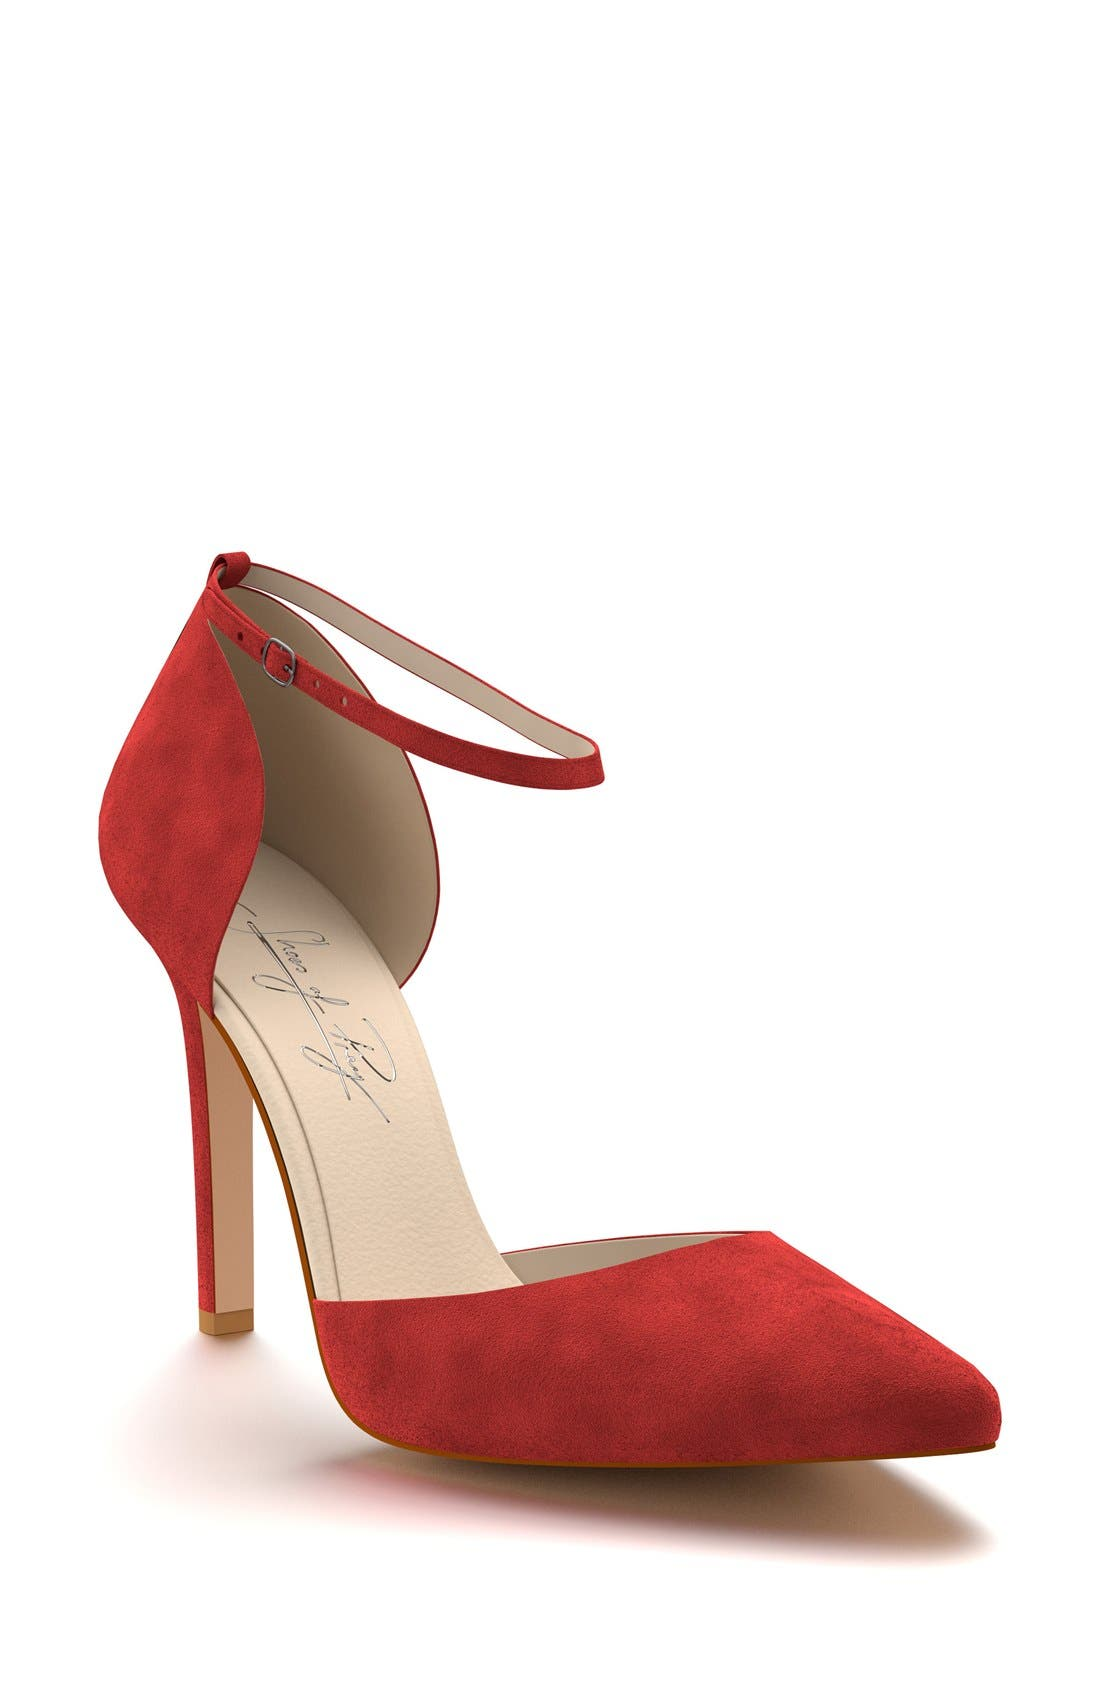 Alternate Image 1 Selected - Shoes of Prey d'Orsay Ankle Strap Pump (Women)